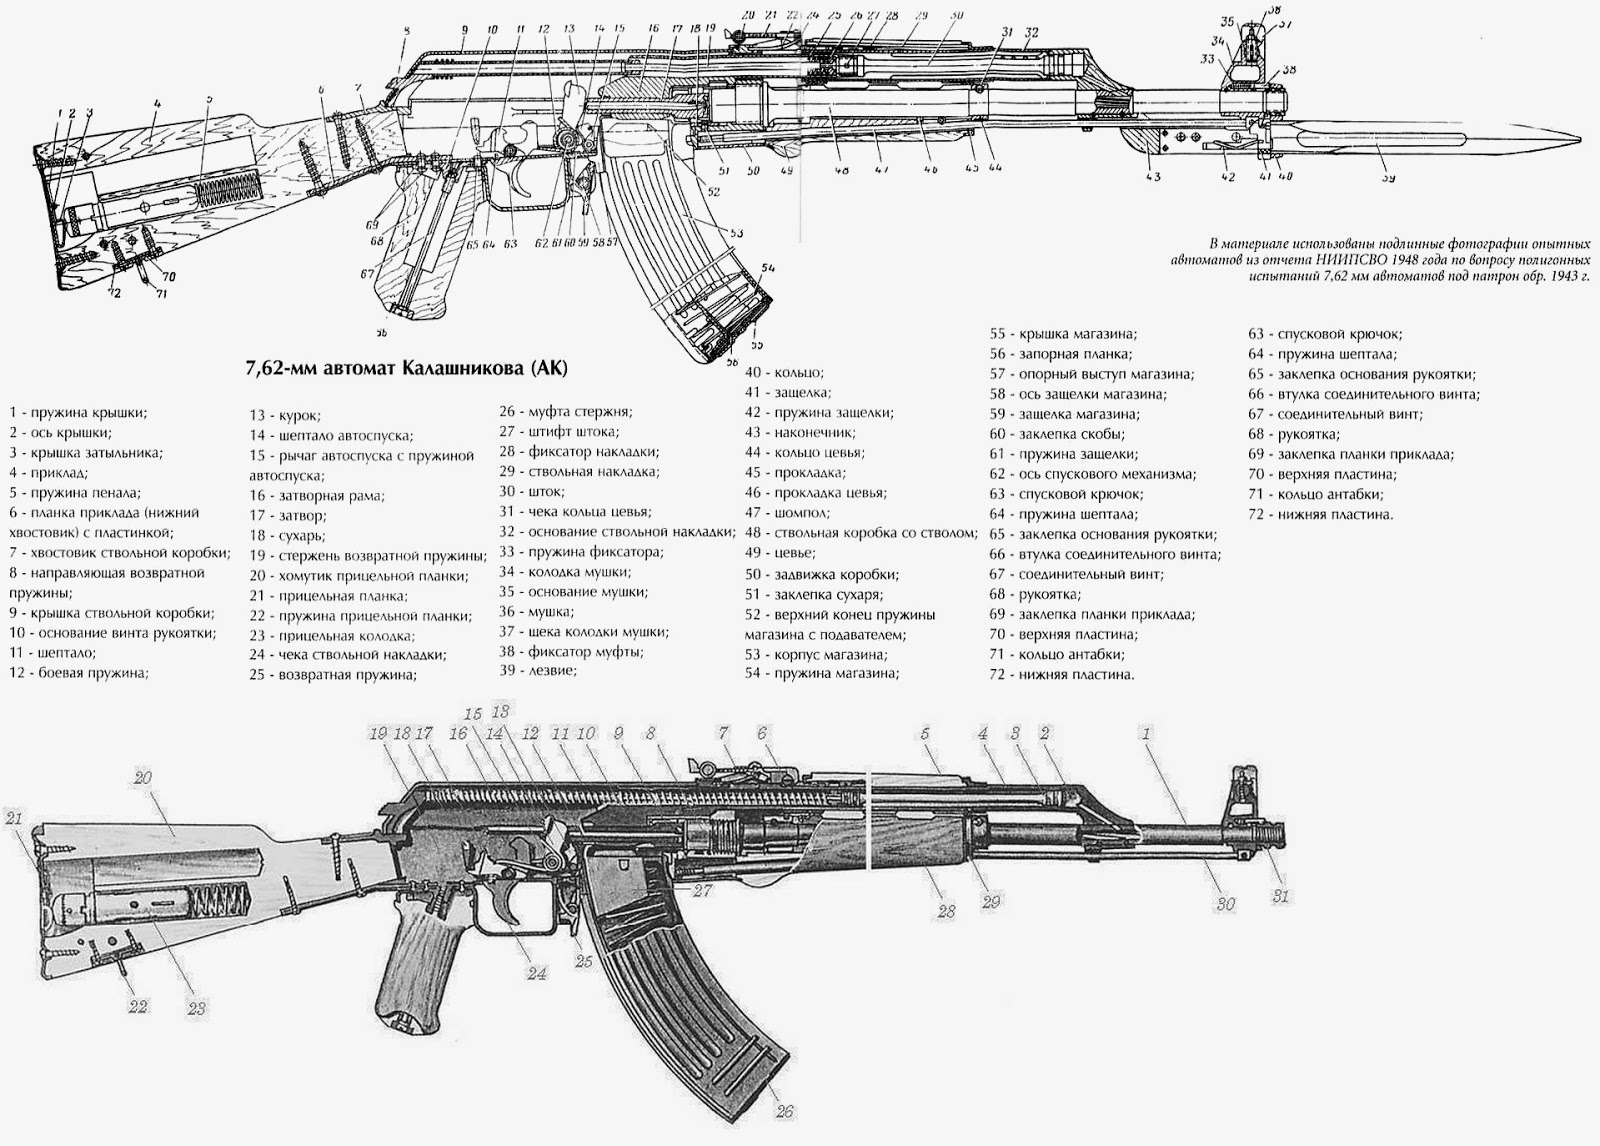 Ak 47 Receiver Parts Diagram 2004 Jeep Grand Cherokee Window Wiring Exploded Related Keywords